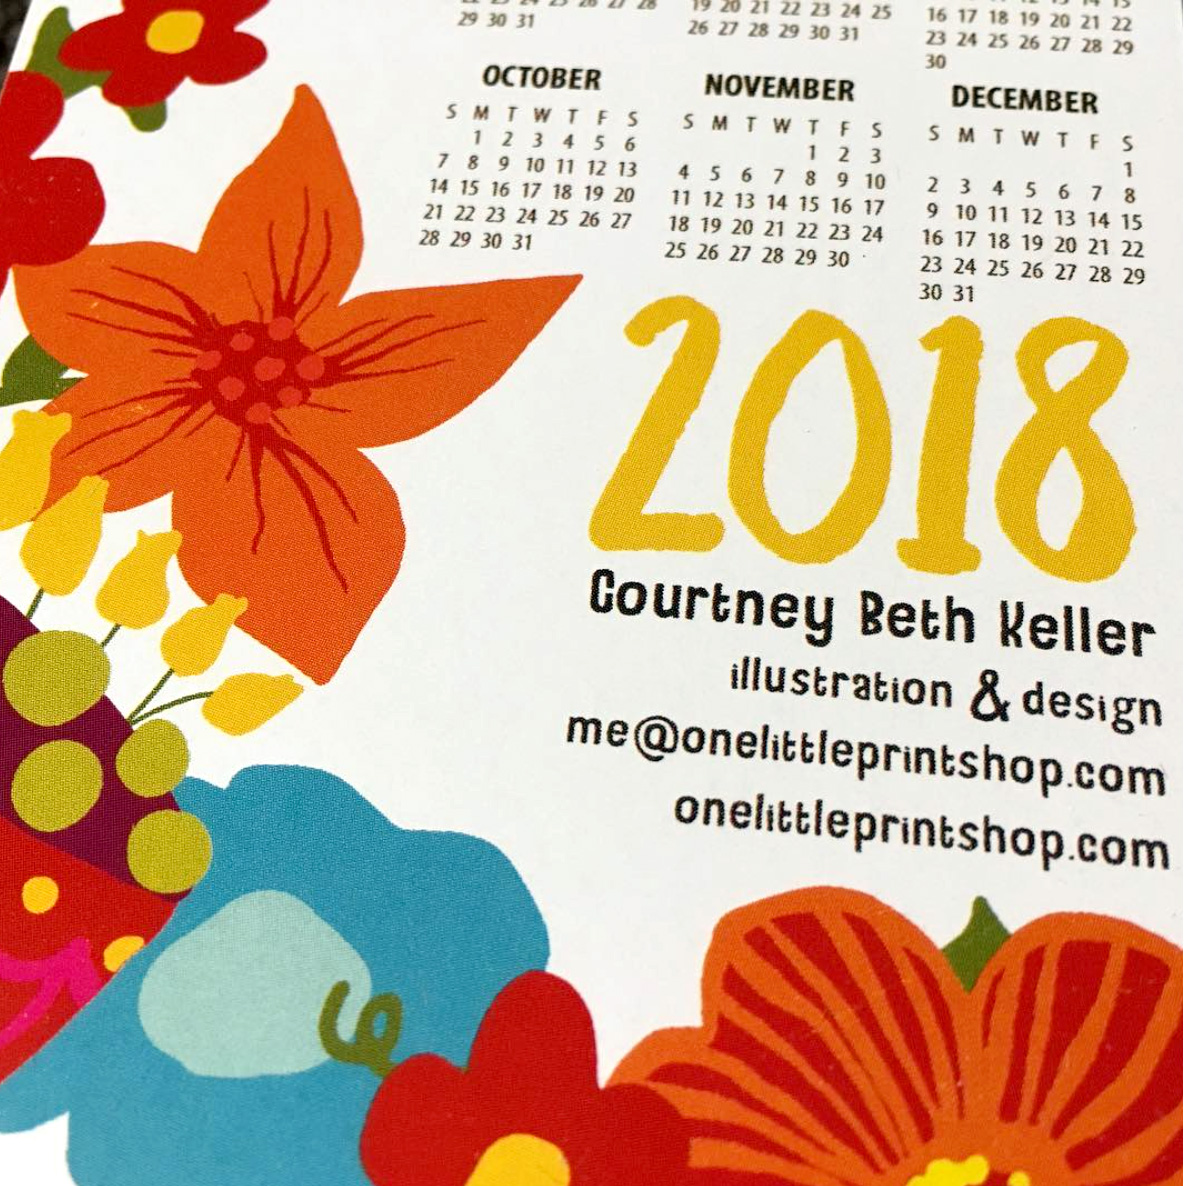 Courtney Beth has something beautiful to accompany you through the year 2018!